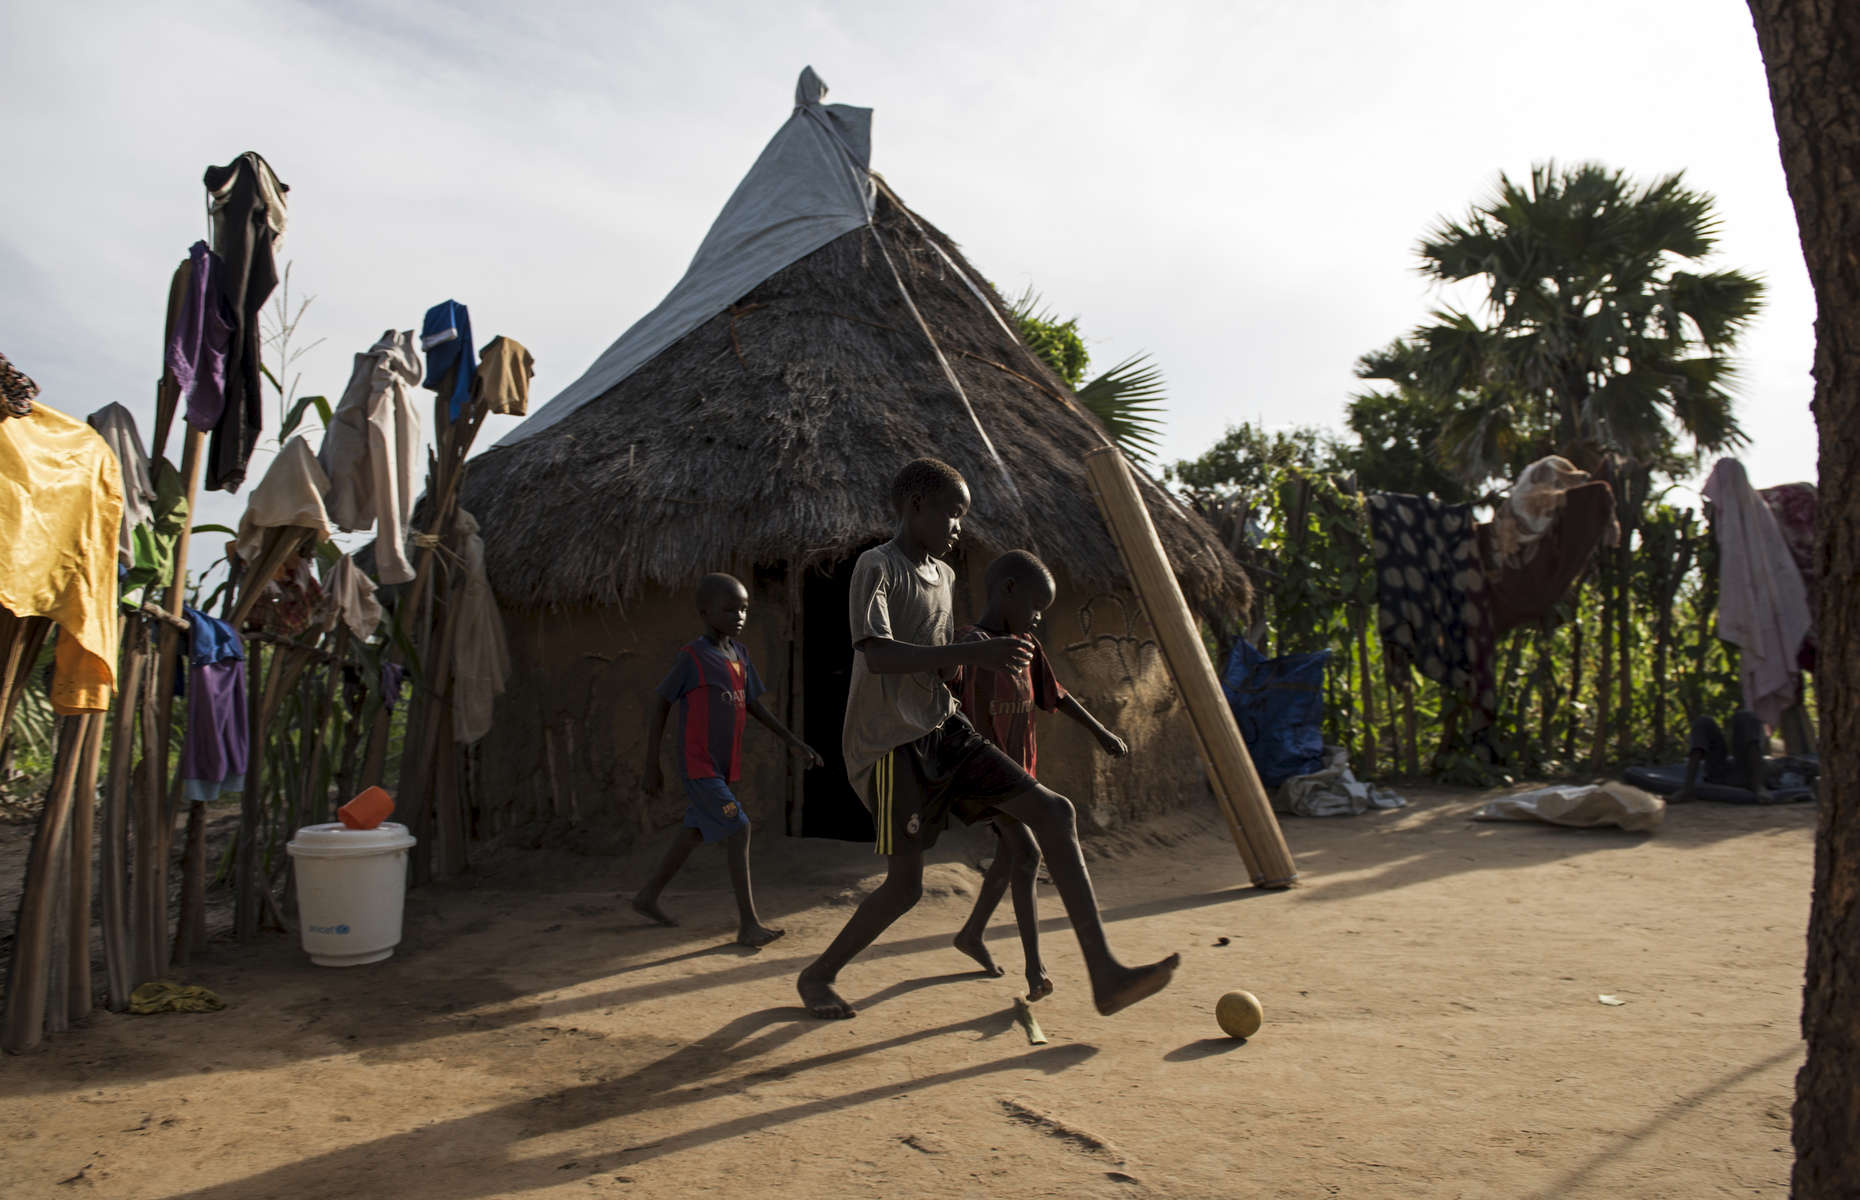 Chuol, 9, from southern Unity State, plays soccer in the compound where he and his relatives are staying alongside other internally displaced Nu'er in Unity State, South Sudan, September 11, 2015.   Chuol was chased out of his own village with his grandmother and sister several months ago when it  was attacked, and his father and grandfather were burned alive. He, his grandmother, and sister fled to this area, where they are living on the ground of a host family. in South Sudan, September 11, 2015. Thousands of civilians have been killed, and others displaced since fighting between those loyal to President Salva Kiir and those loyal to opposition leader Riek Marchar began again in 2013.